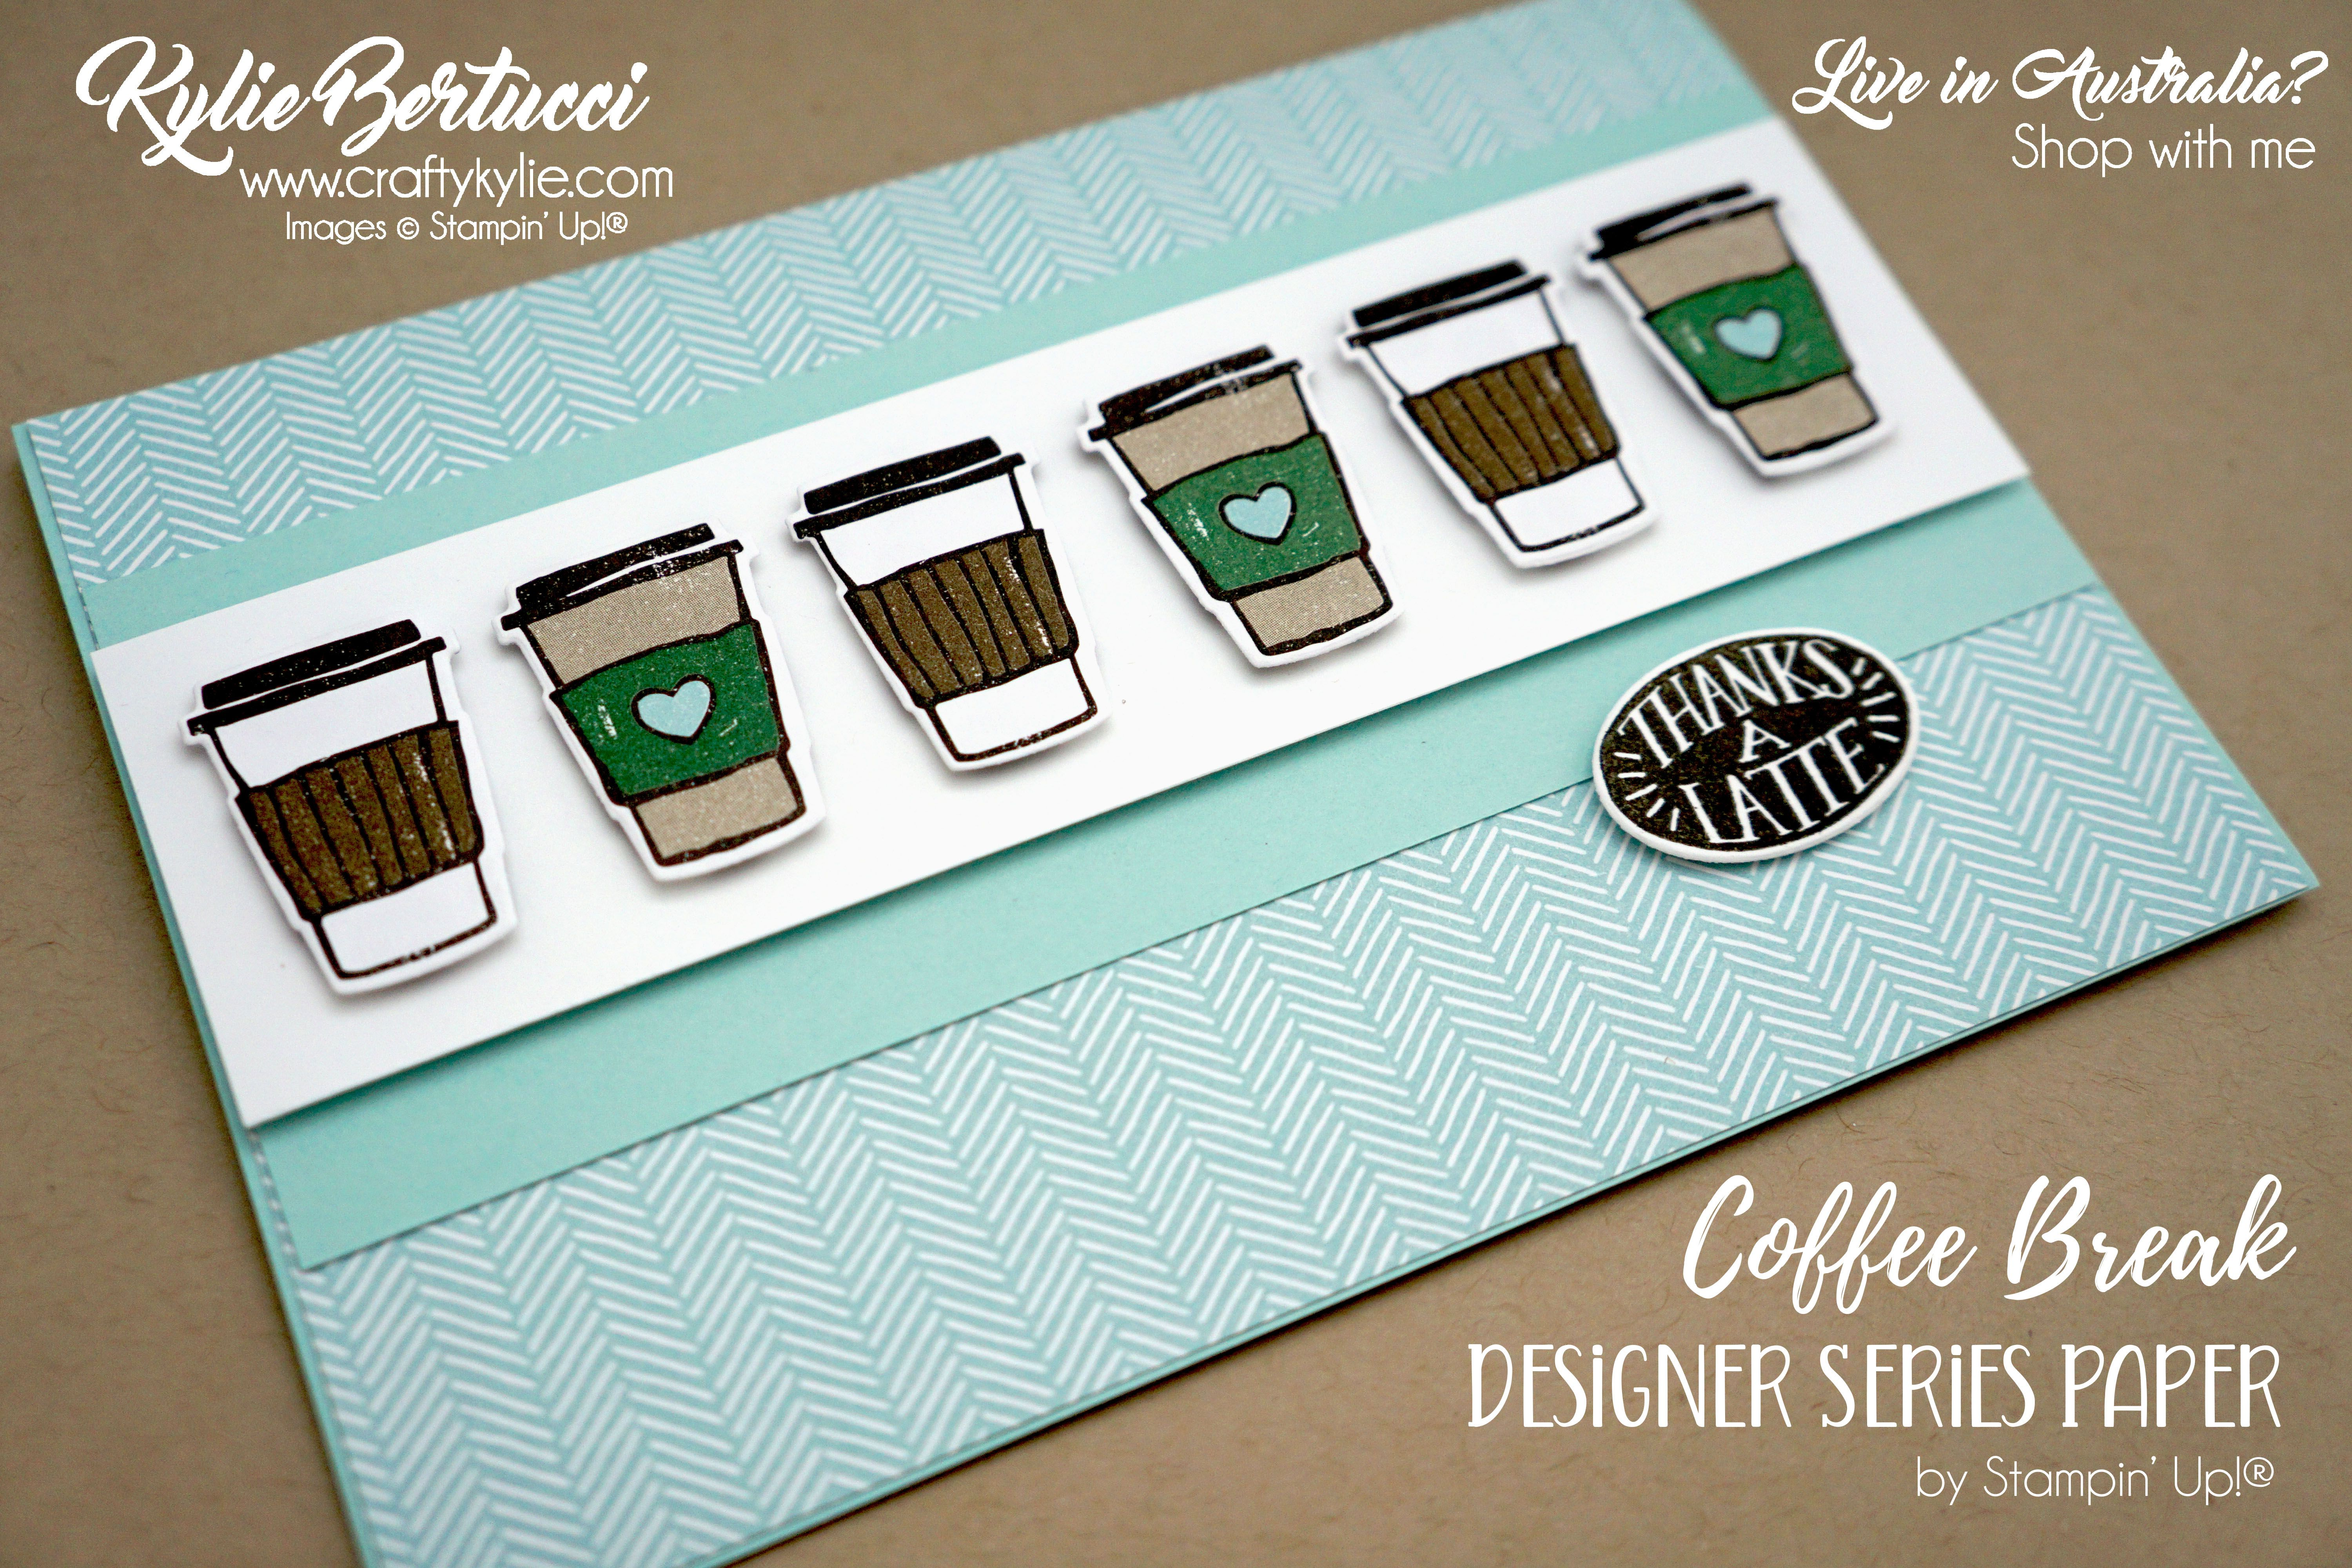 Coffee Break Designer Series Paper with Coffee Café Stamp set Crazy Crafters Blog Hop with special guest Debbie Henderson! #stampinup #cardmaking #handmadecard #rubberstamps #stamping #kyliebertucci #loveitchopit